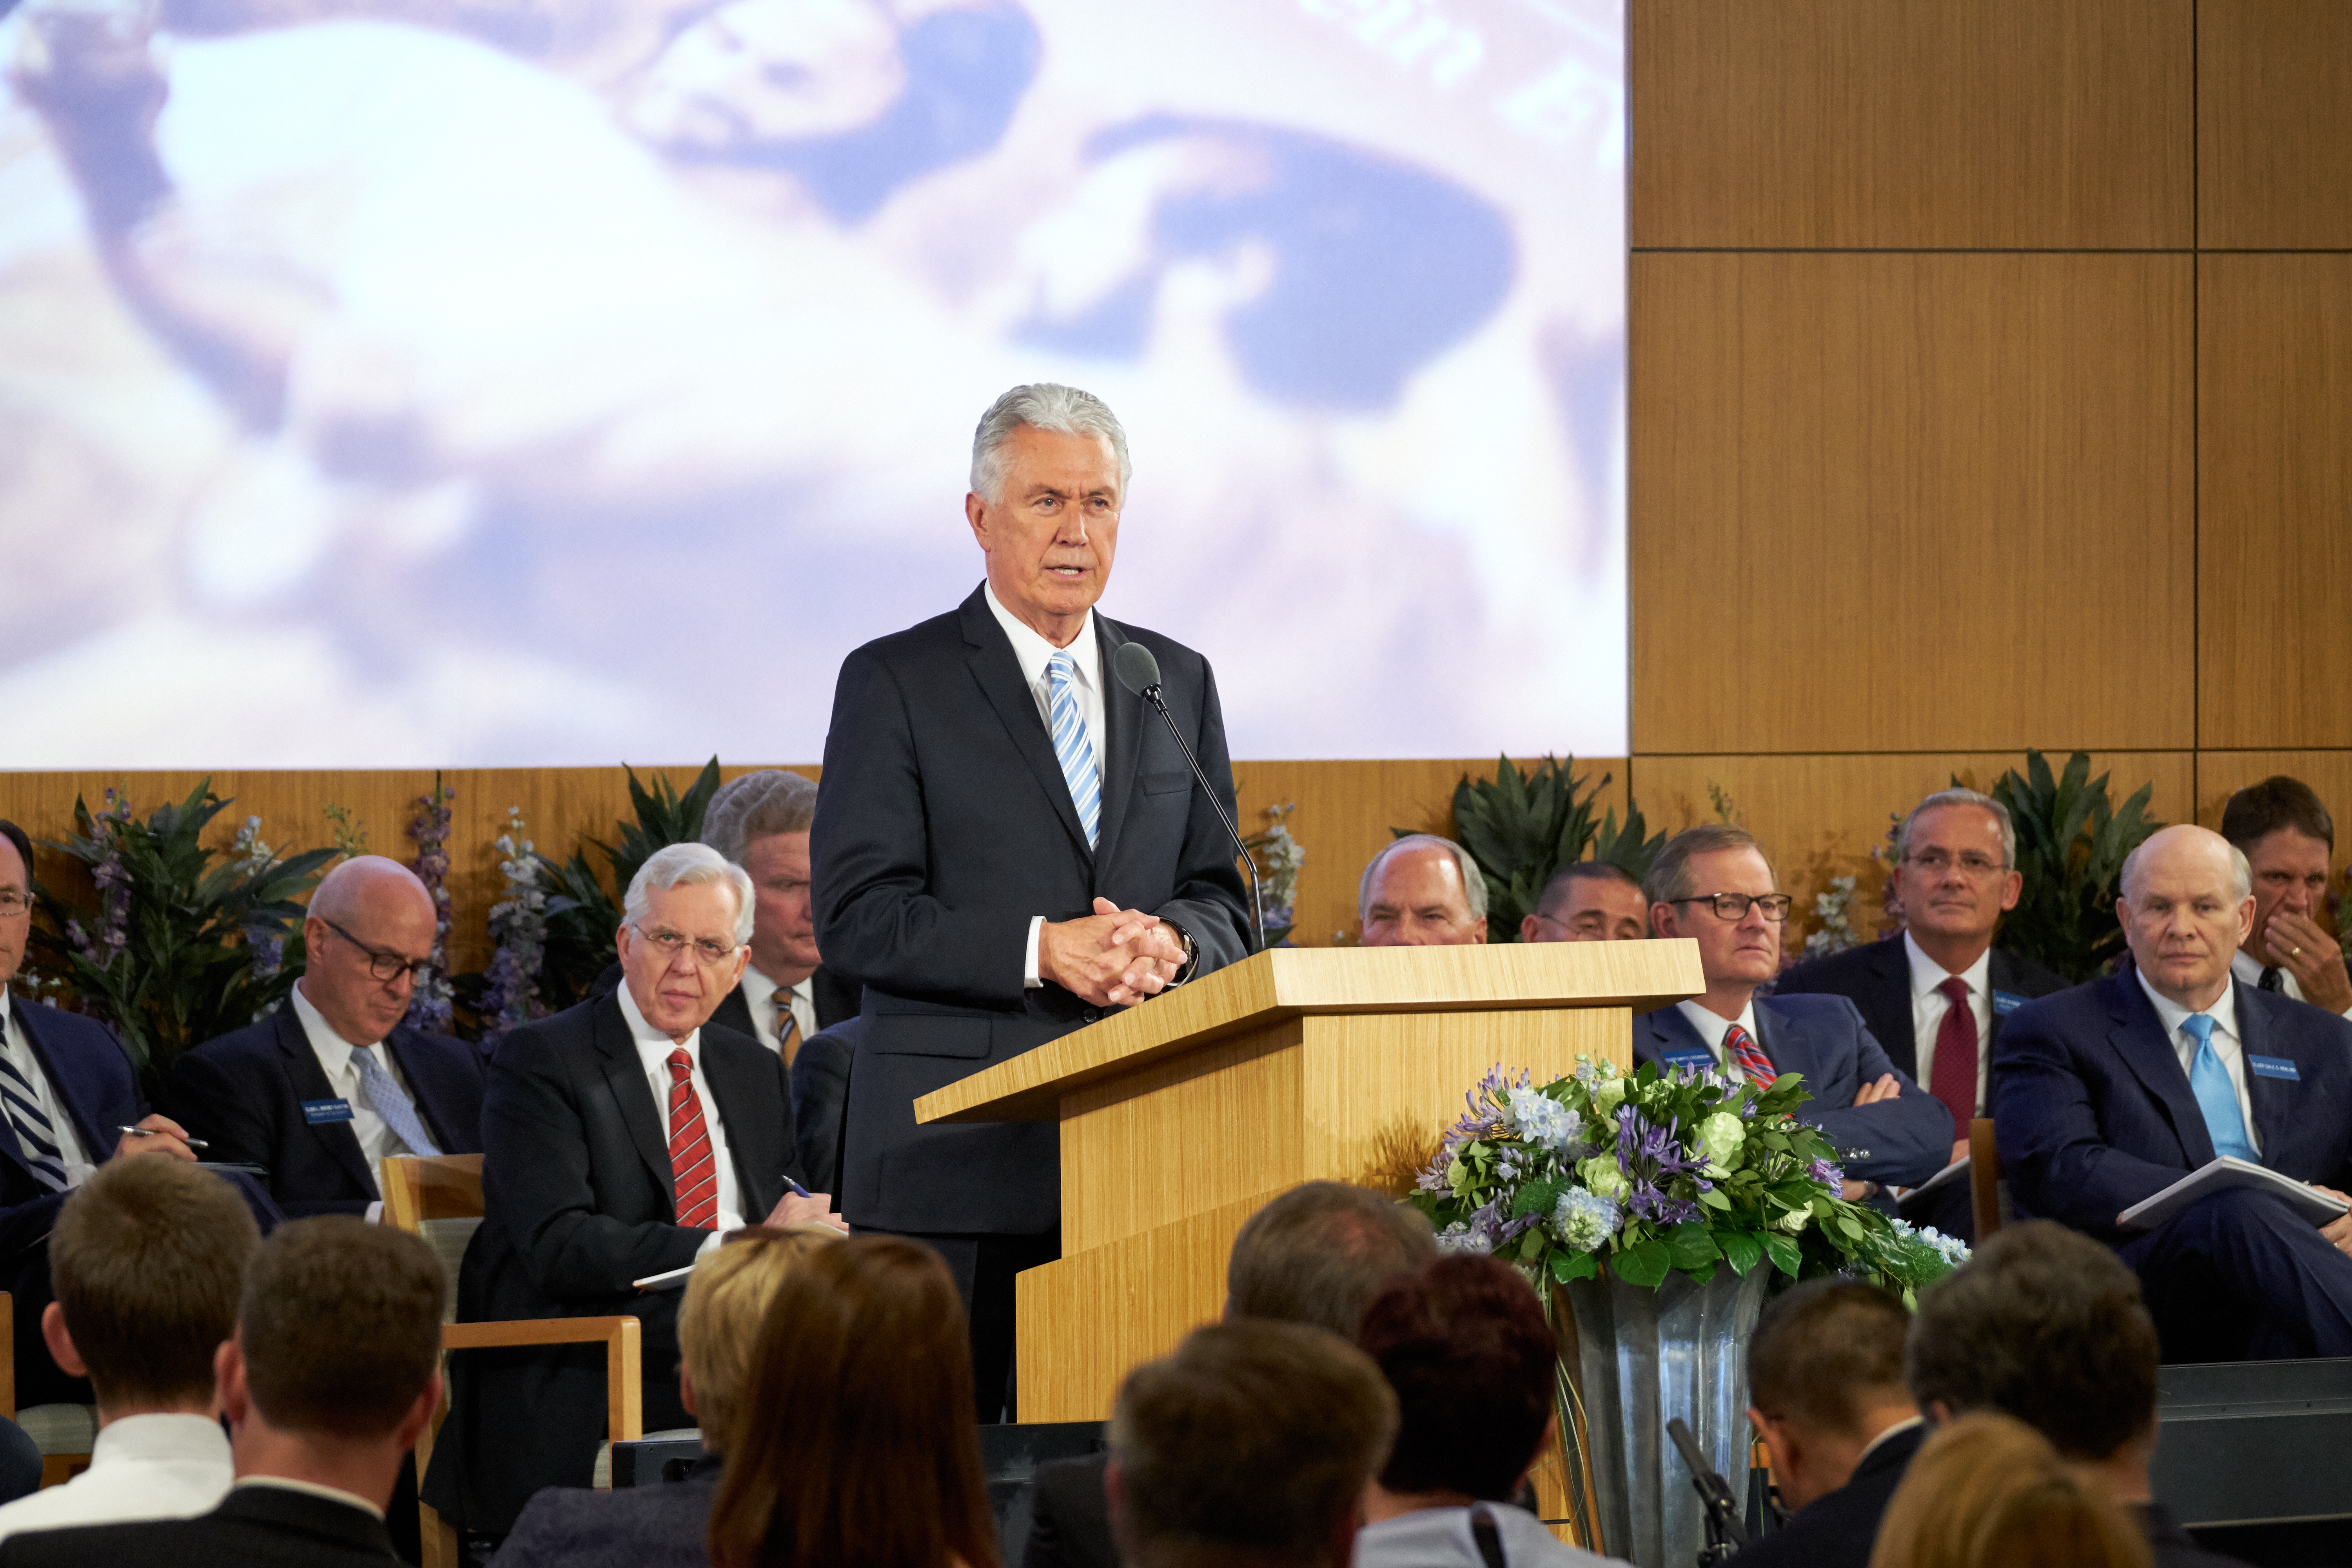 Elder Dieter F. Uchtdorf addresses new mission presidents and their wives during the 2018 Mission Leadership Seminar held in the Provo MTC June 24-26.